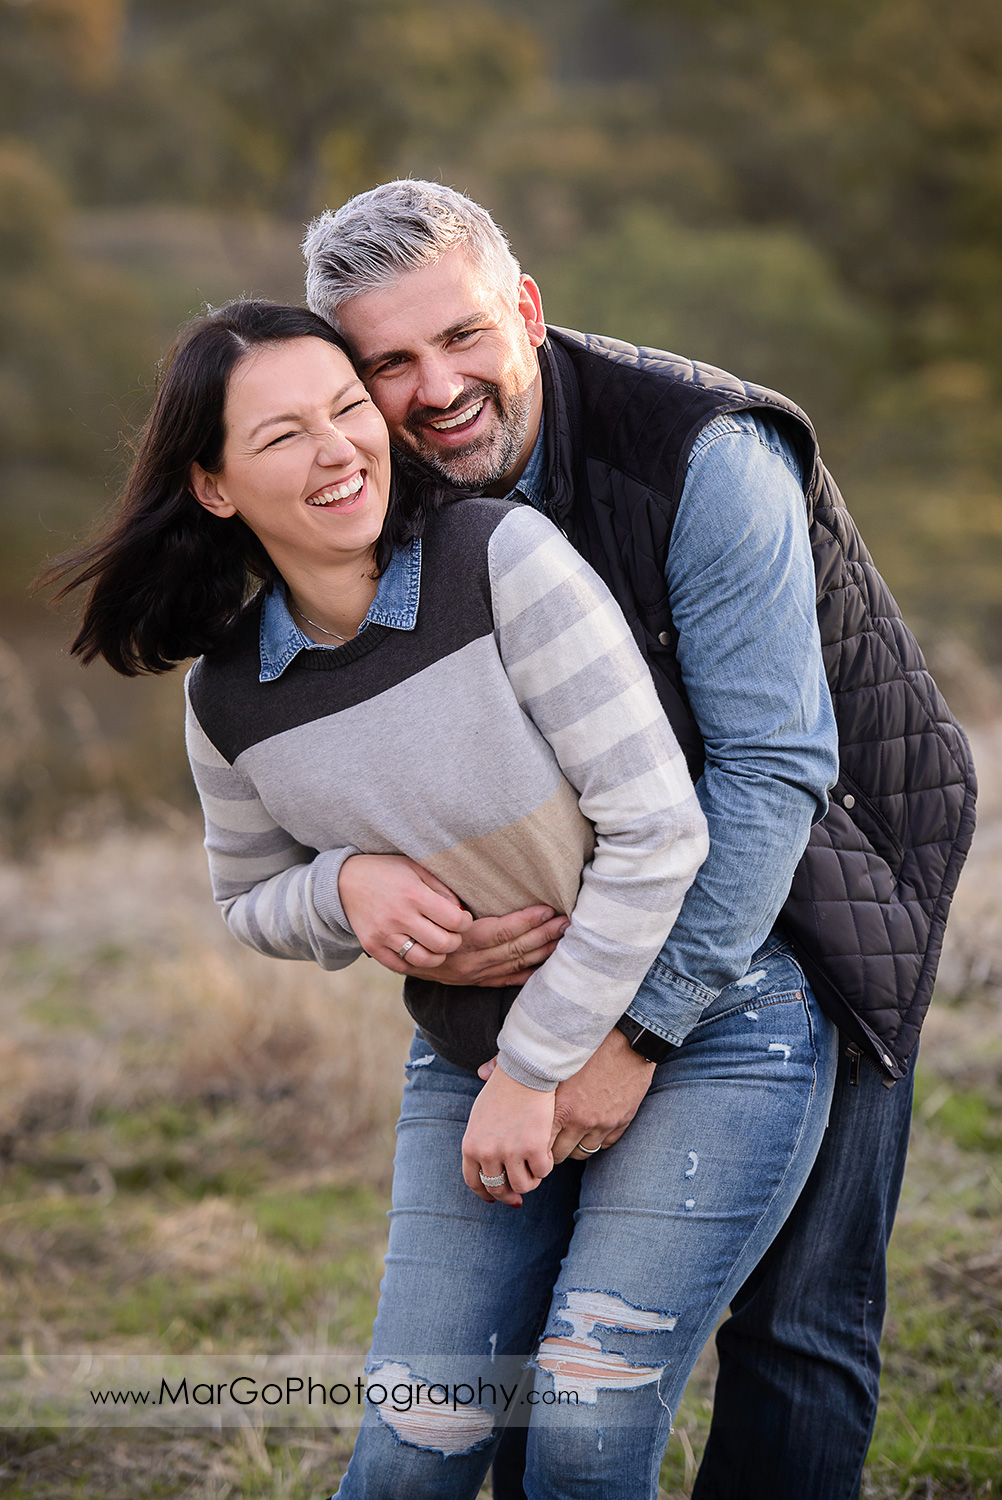 3/4 vertical portrait of man and woman wearing blue and grey clothes laughing during family session at Diablo Foothills Regional Park in Walnut Creek